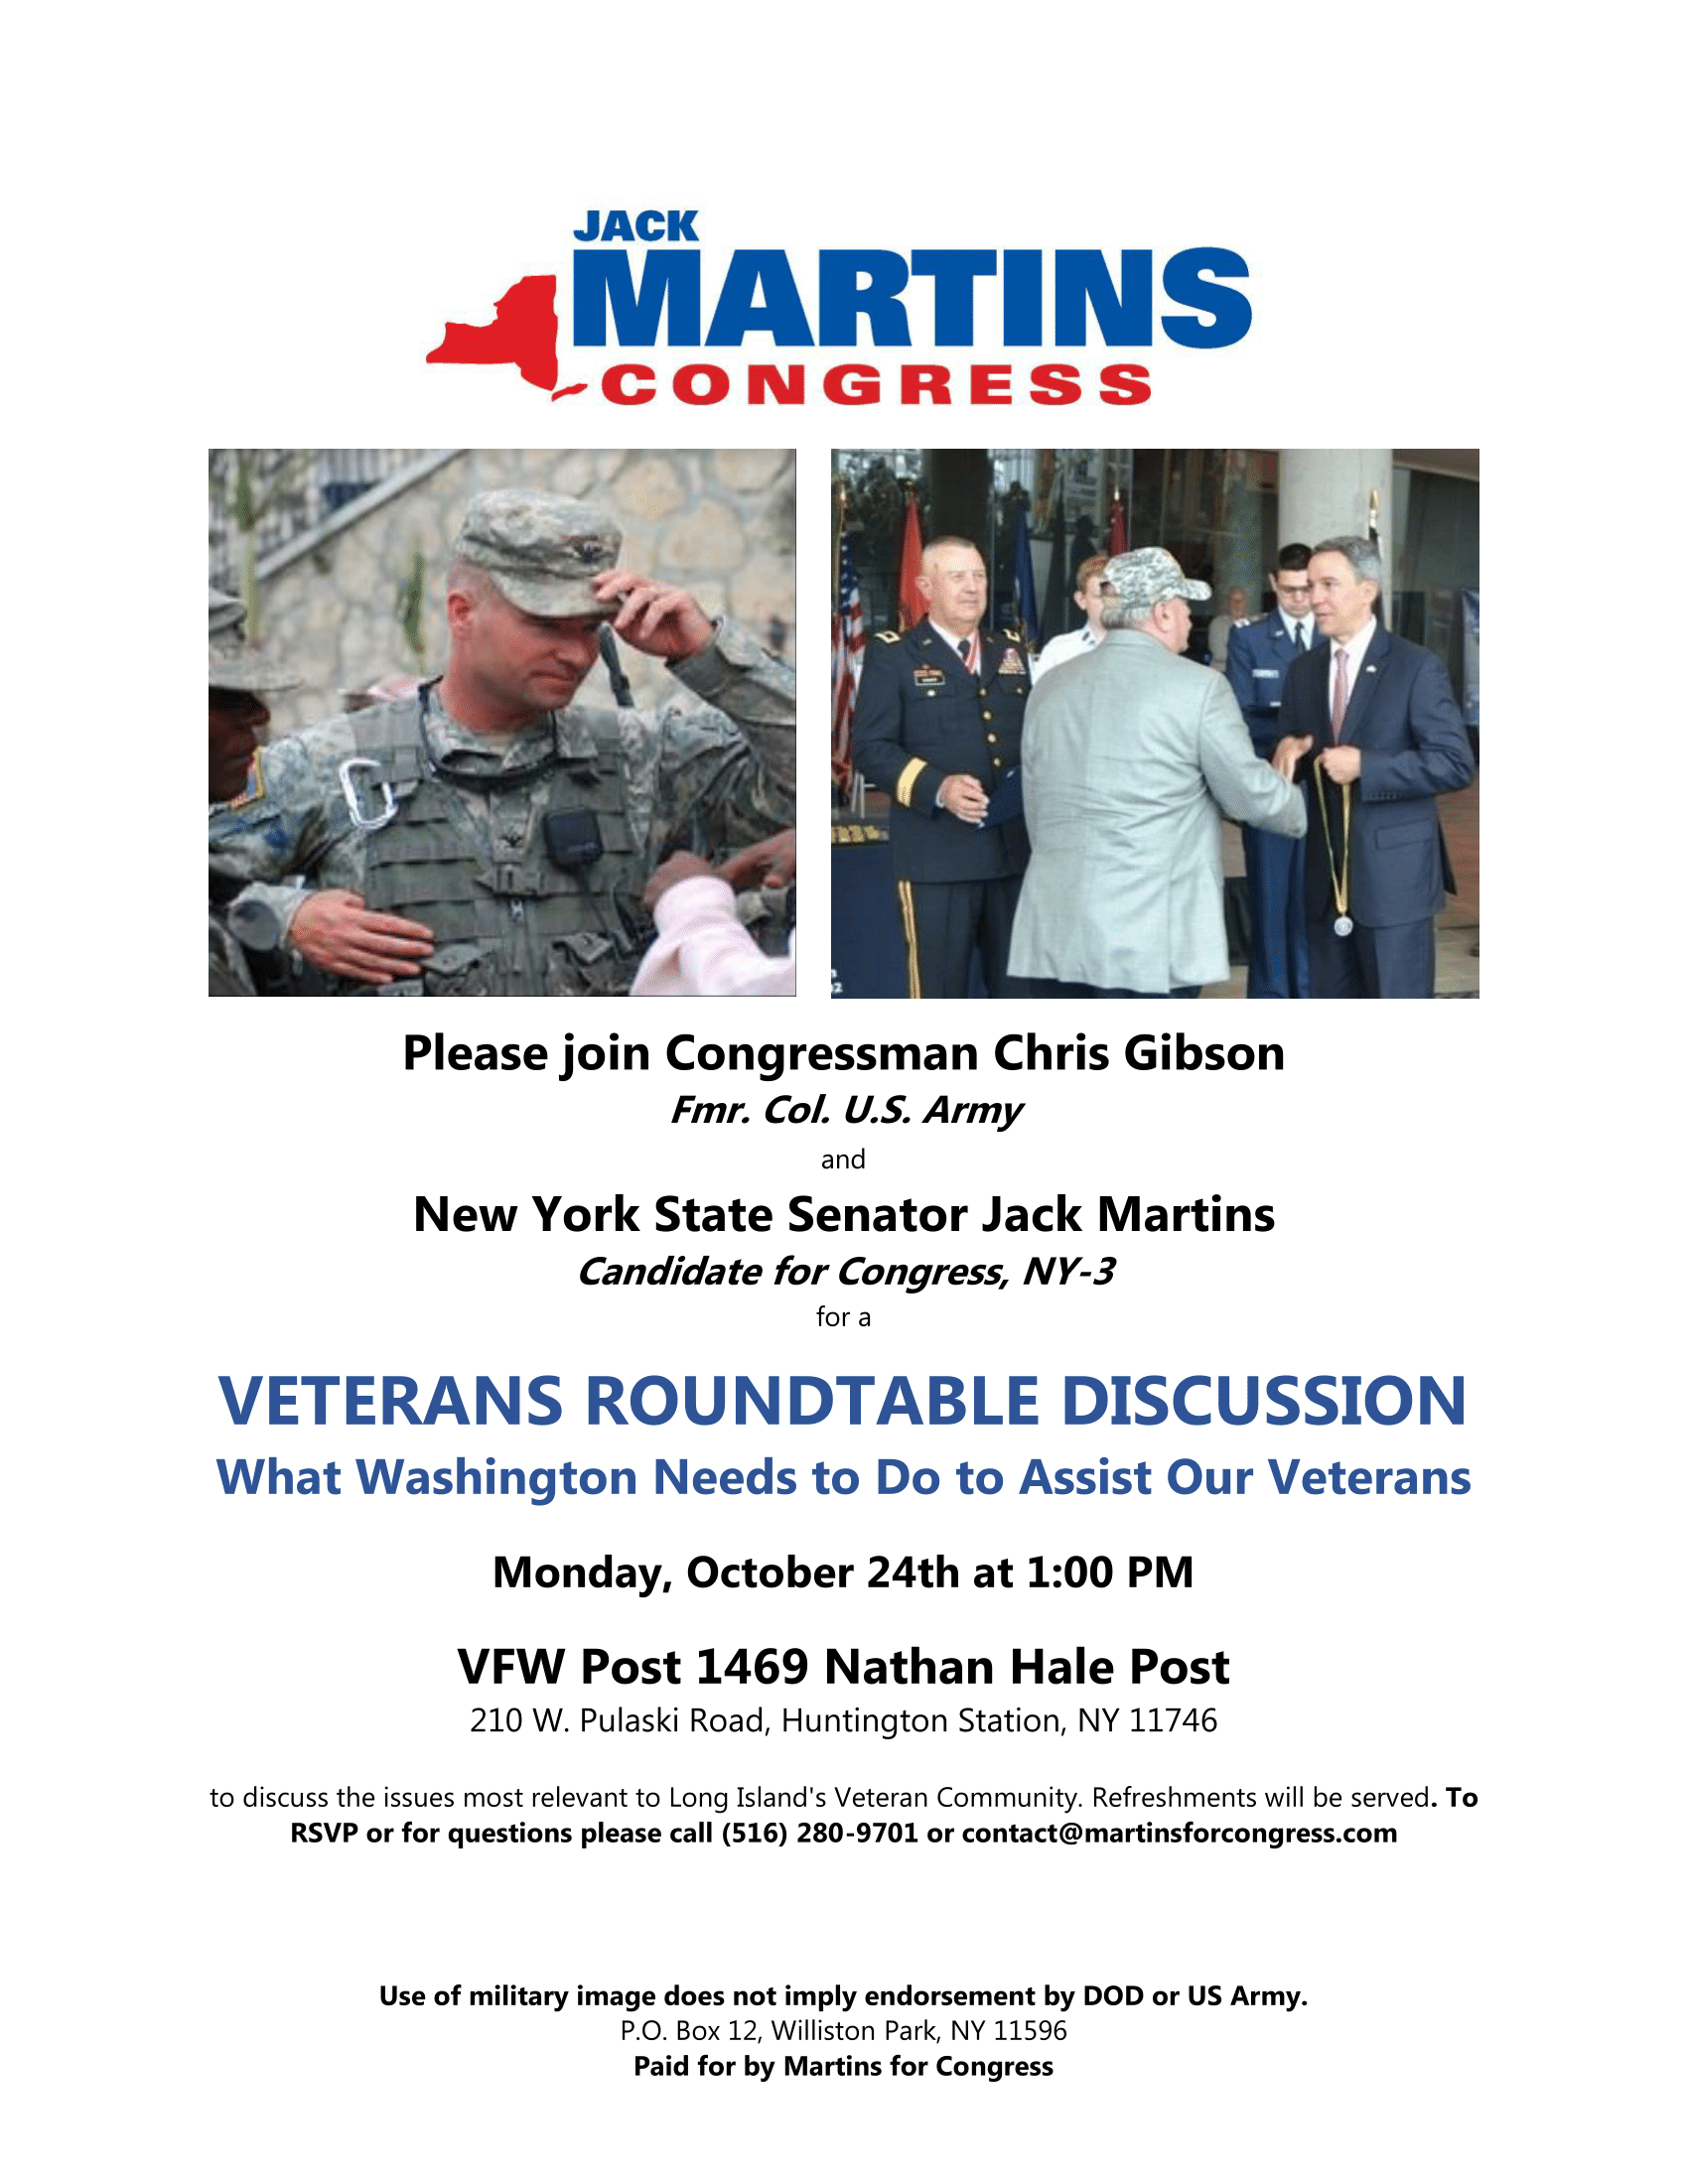 Veterans Roundtable Discussion